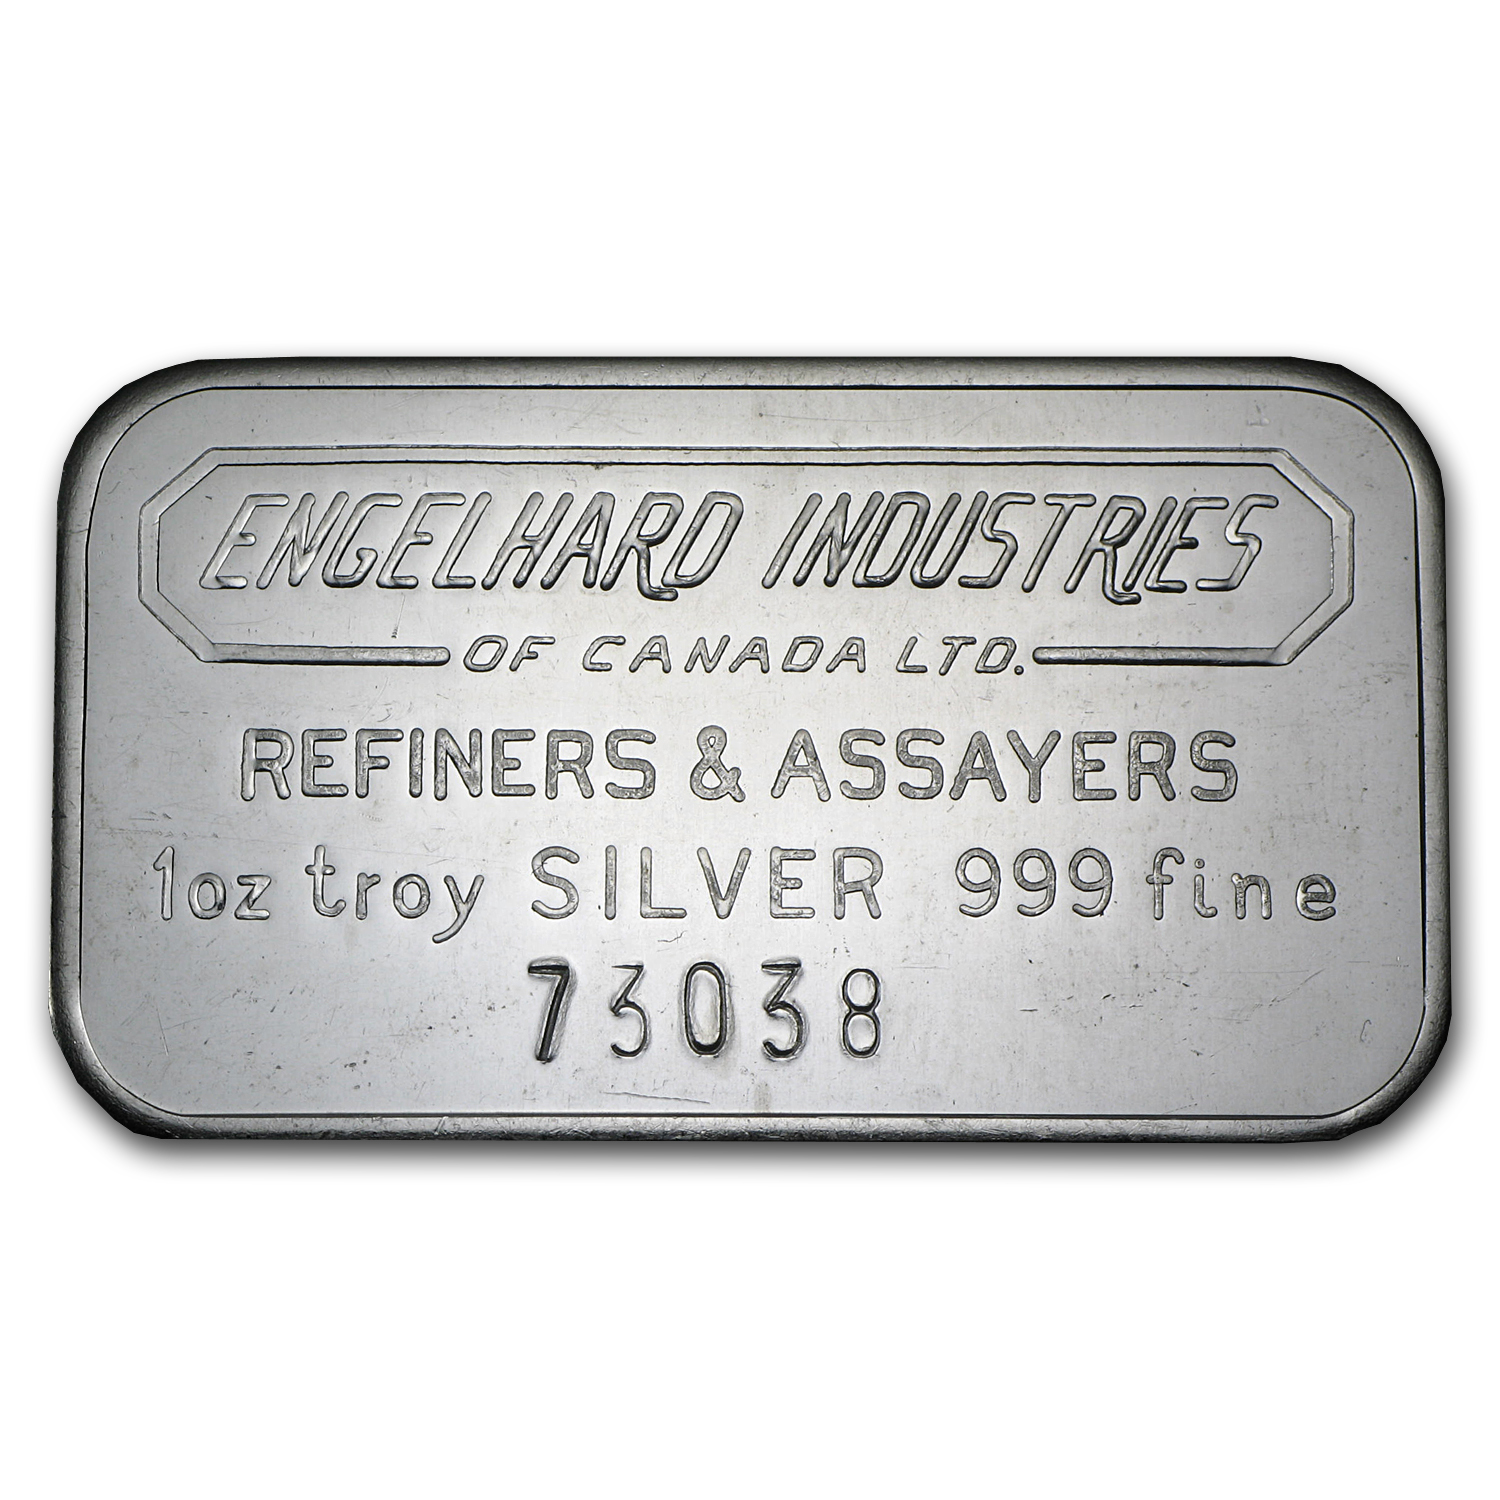 1 oz Silver Bars - Engelhard Industries (Wide/Canada/Smooth/5)